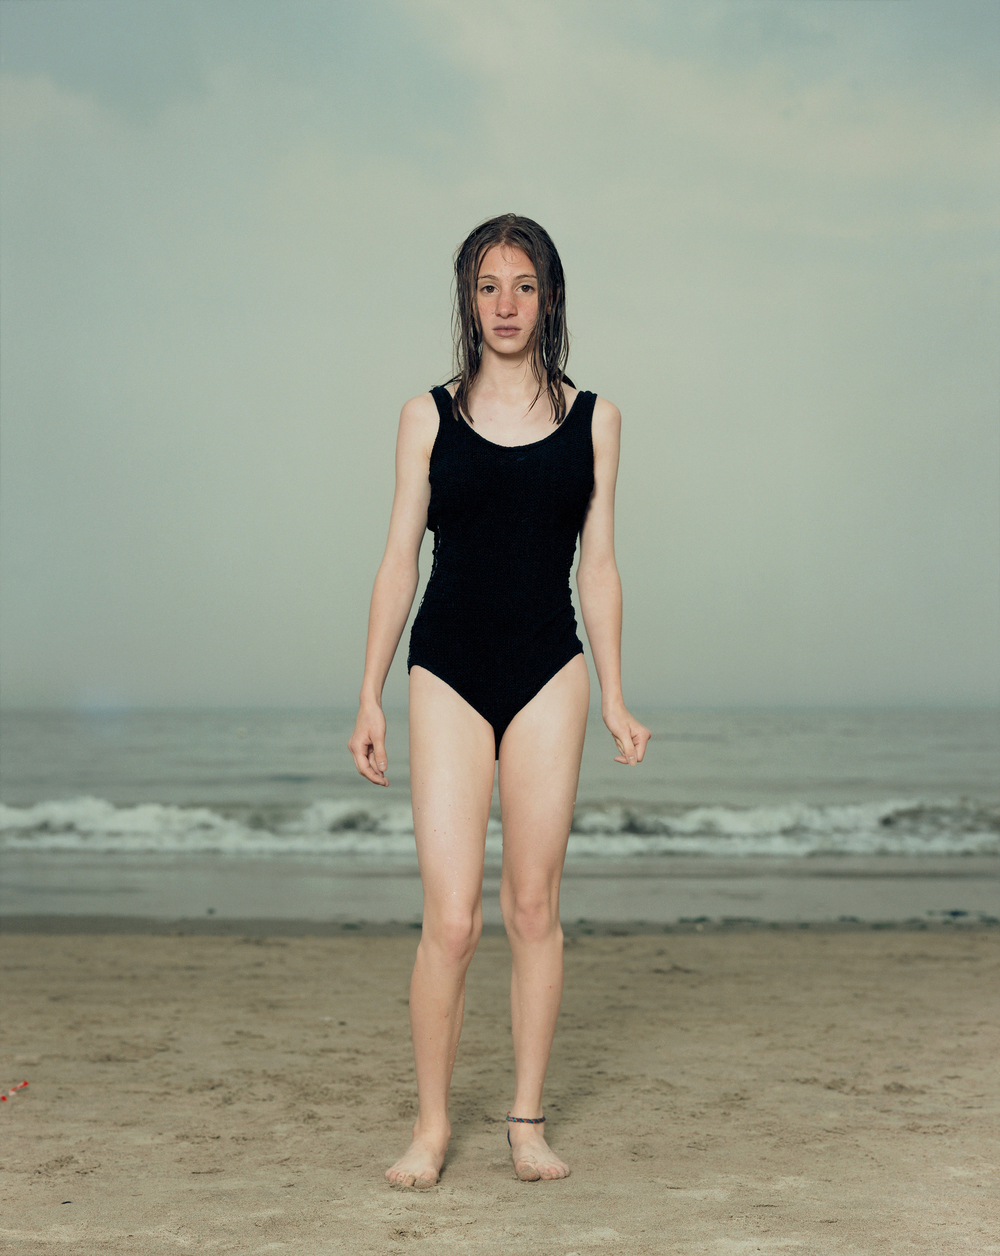 rineke-dijkstra-coney-island-ny-usa-june-20-1993.jpg